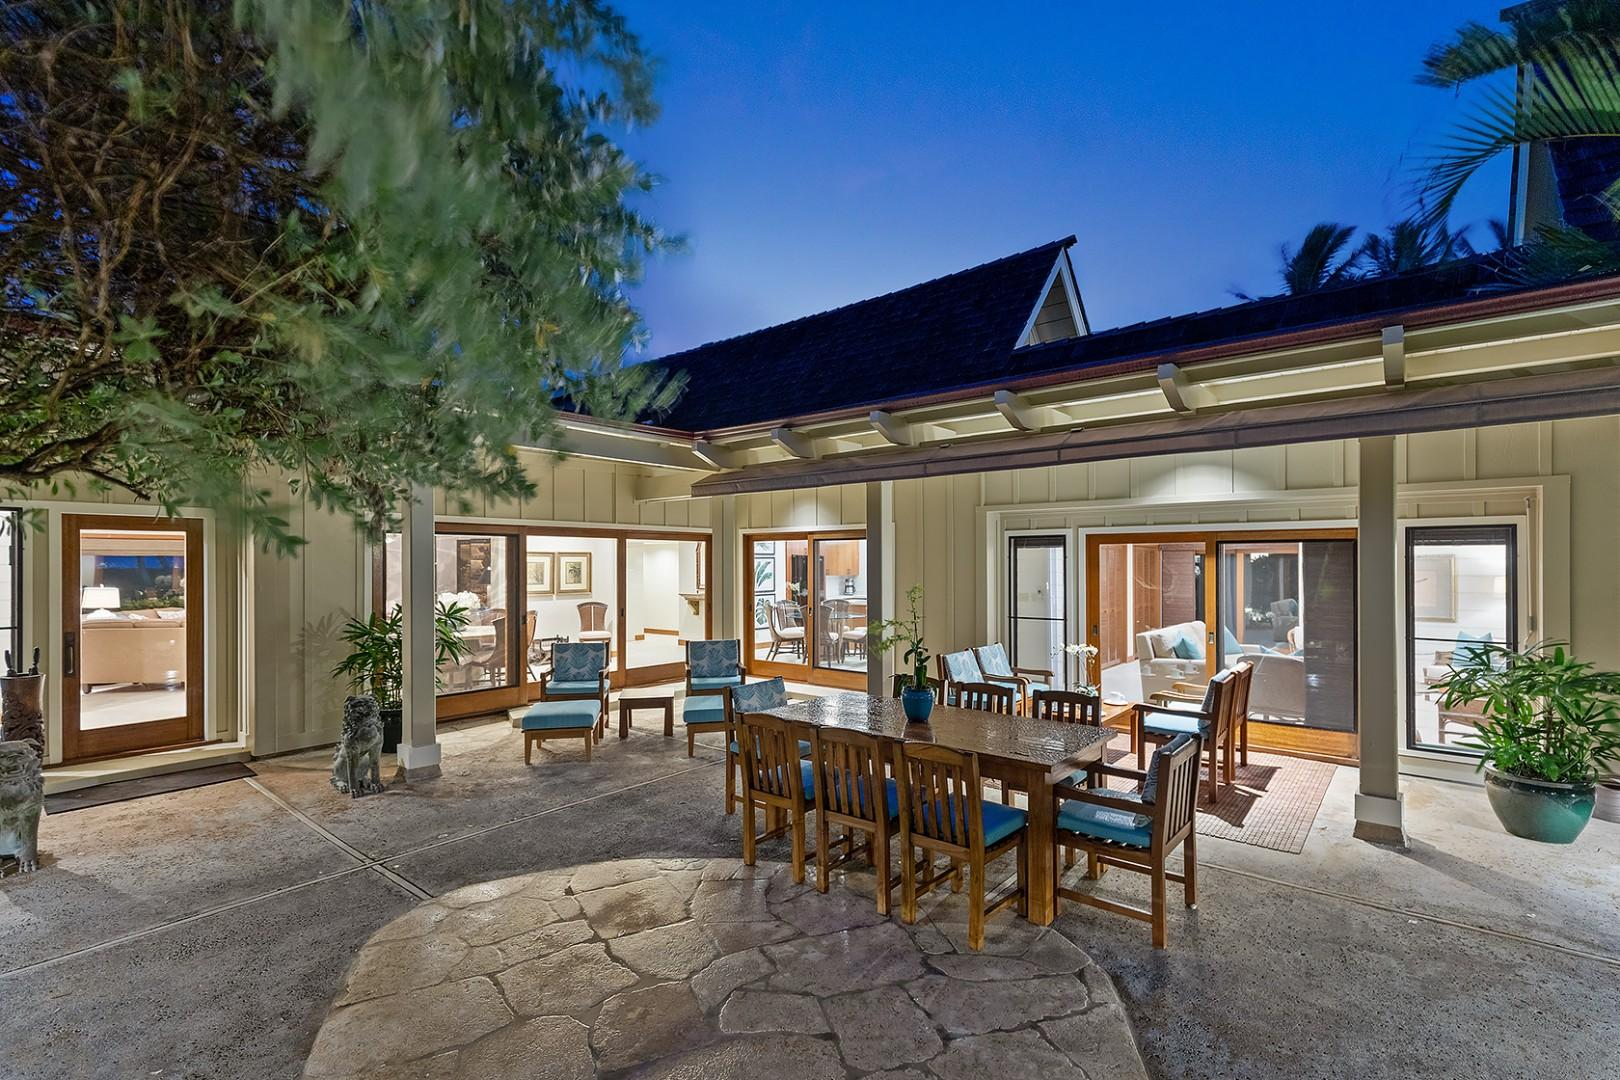 Main House - Outdoor Lanai and Outdoor Dining